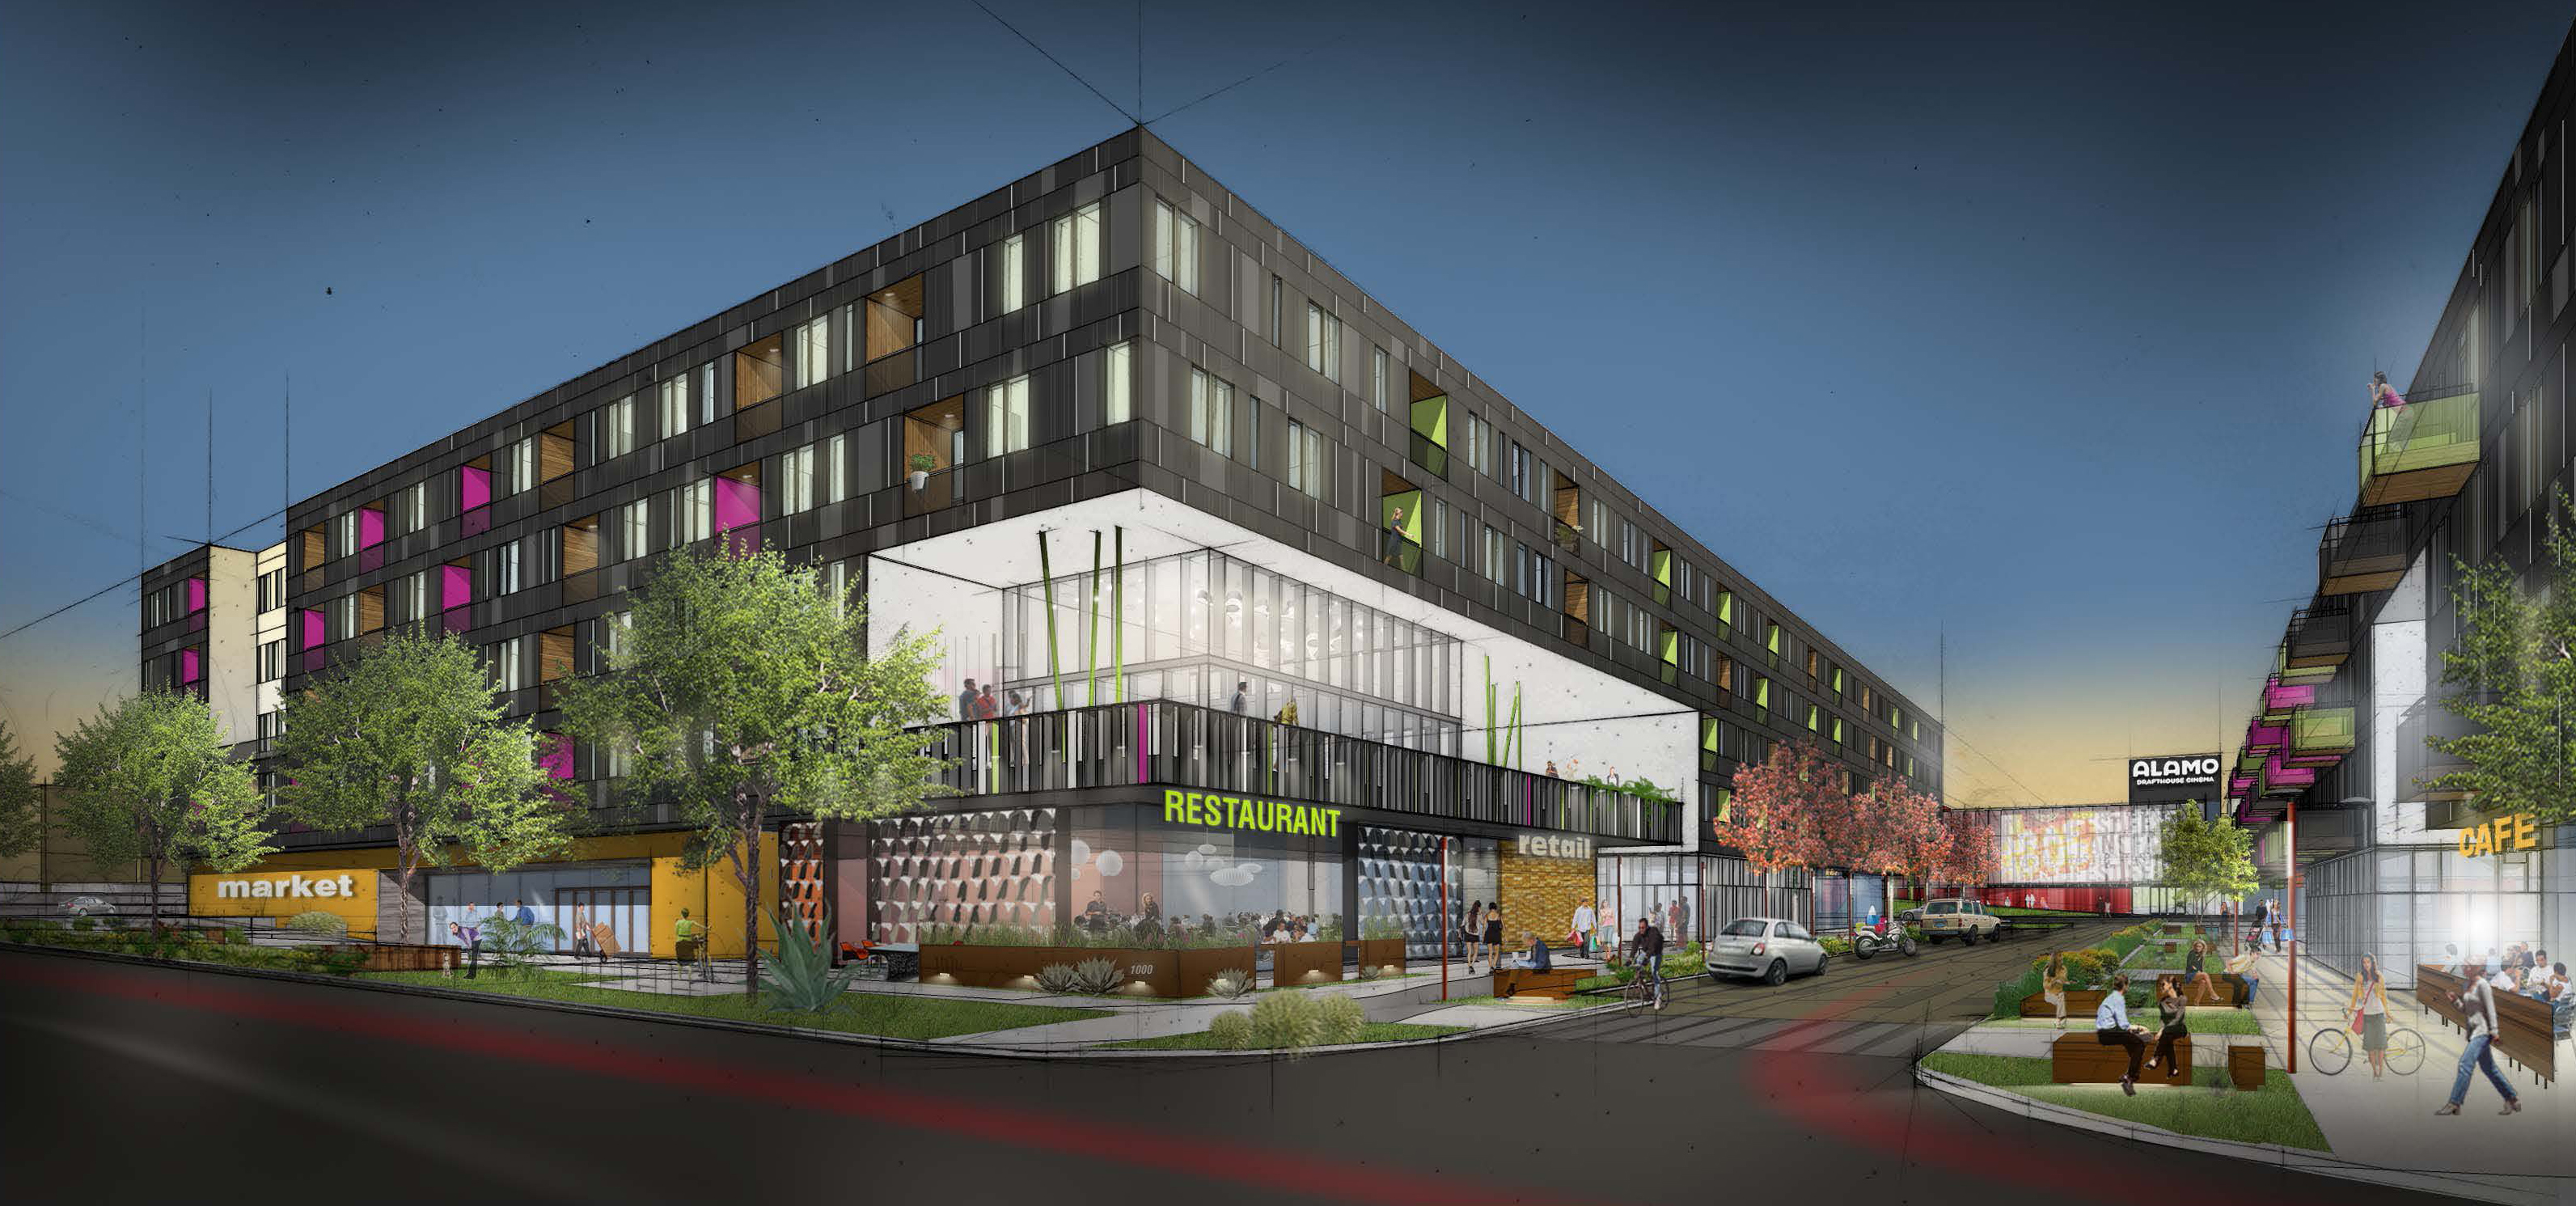 Lamar Union Austin S Newest Model For Mixed Use Urban